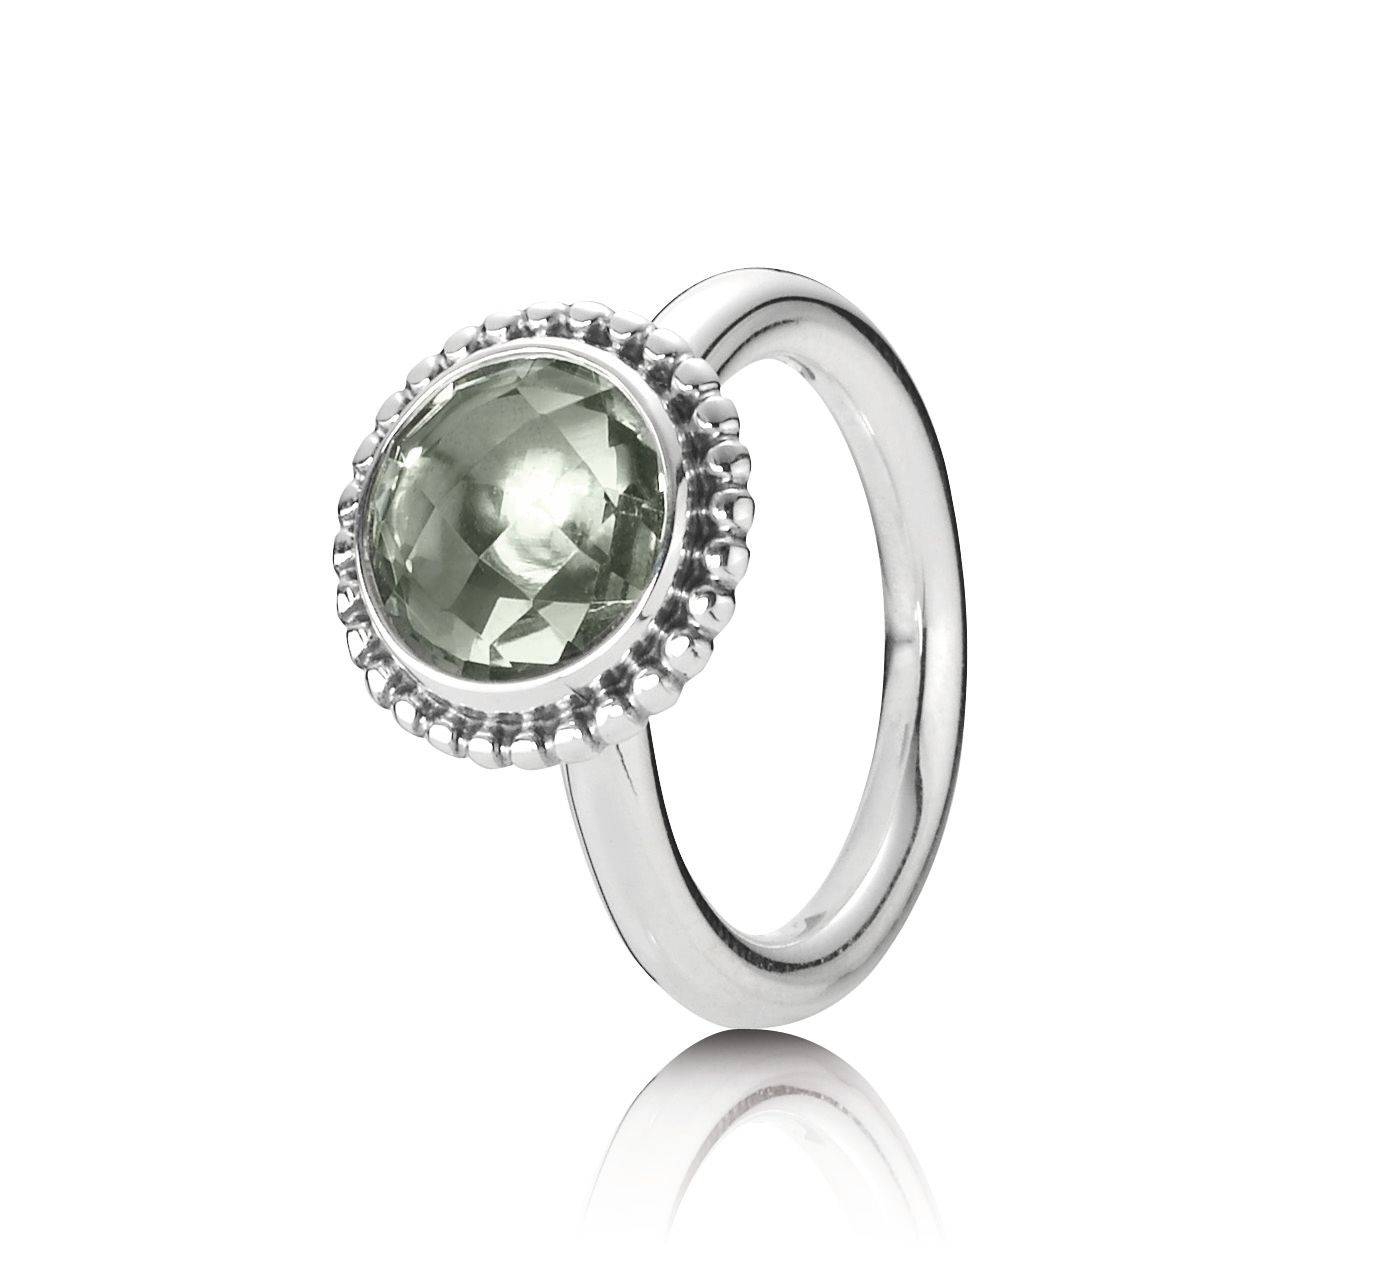 Green quartz silver ring